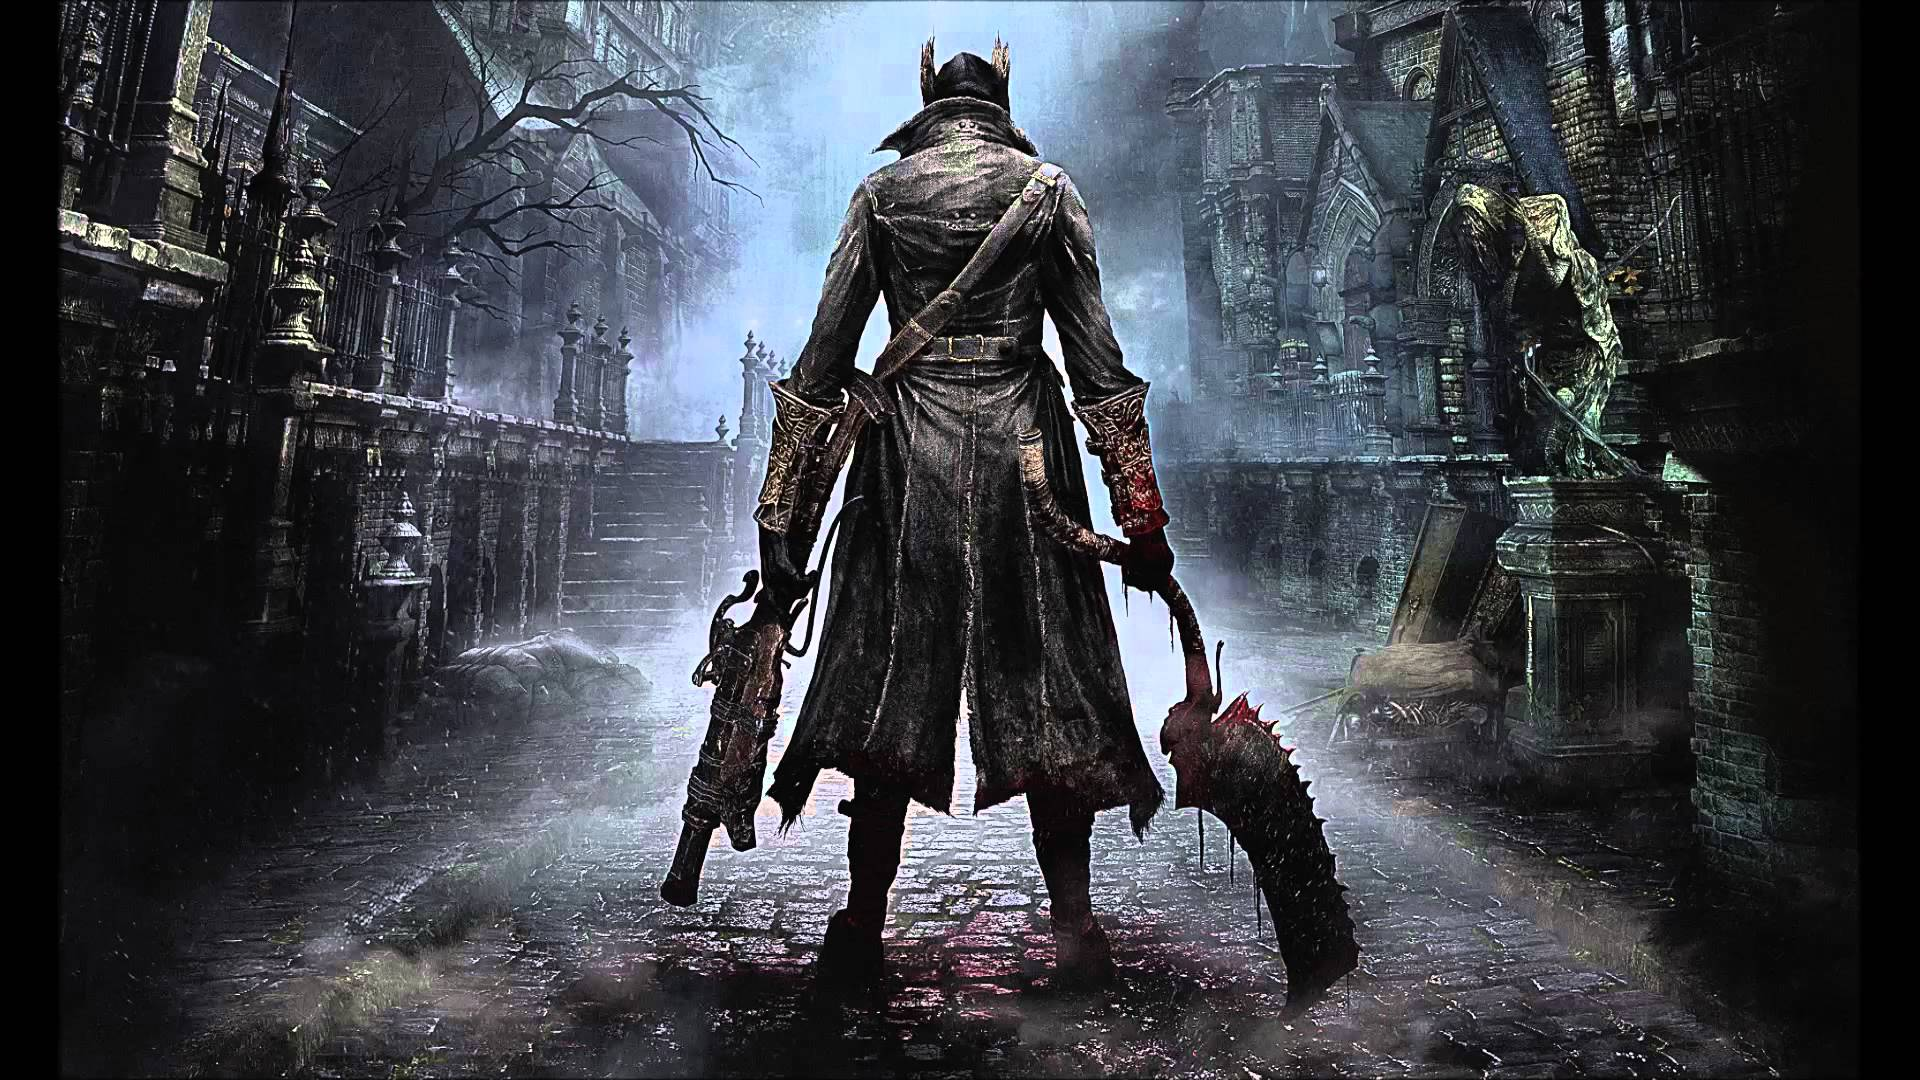 Bloodborne : édition Game of the Year annoncée sur PS4